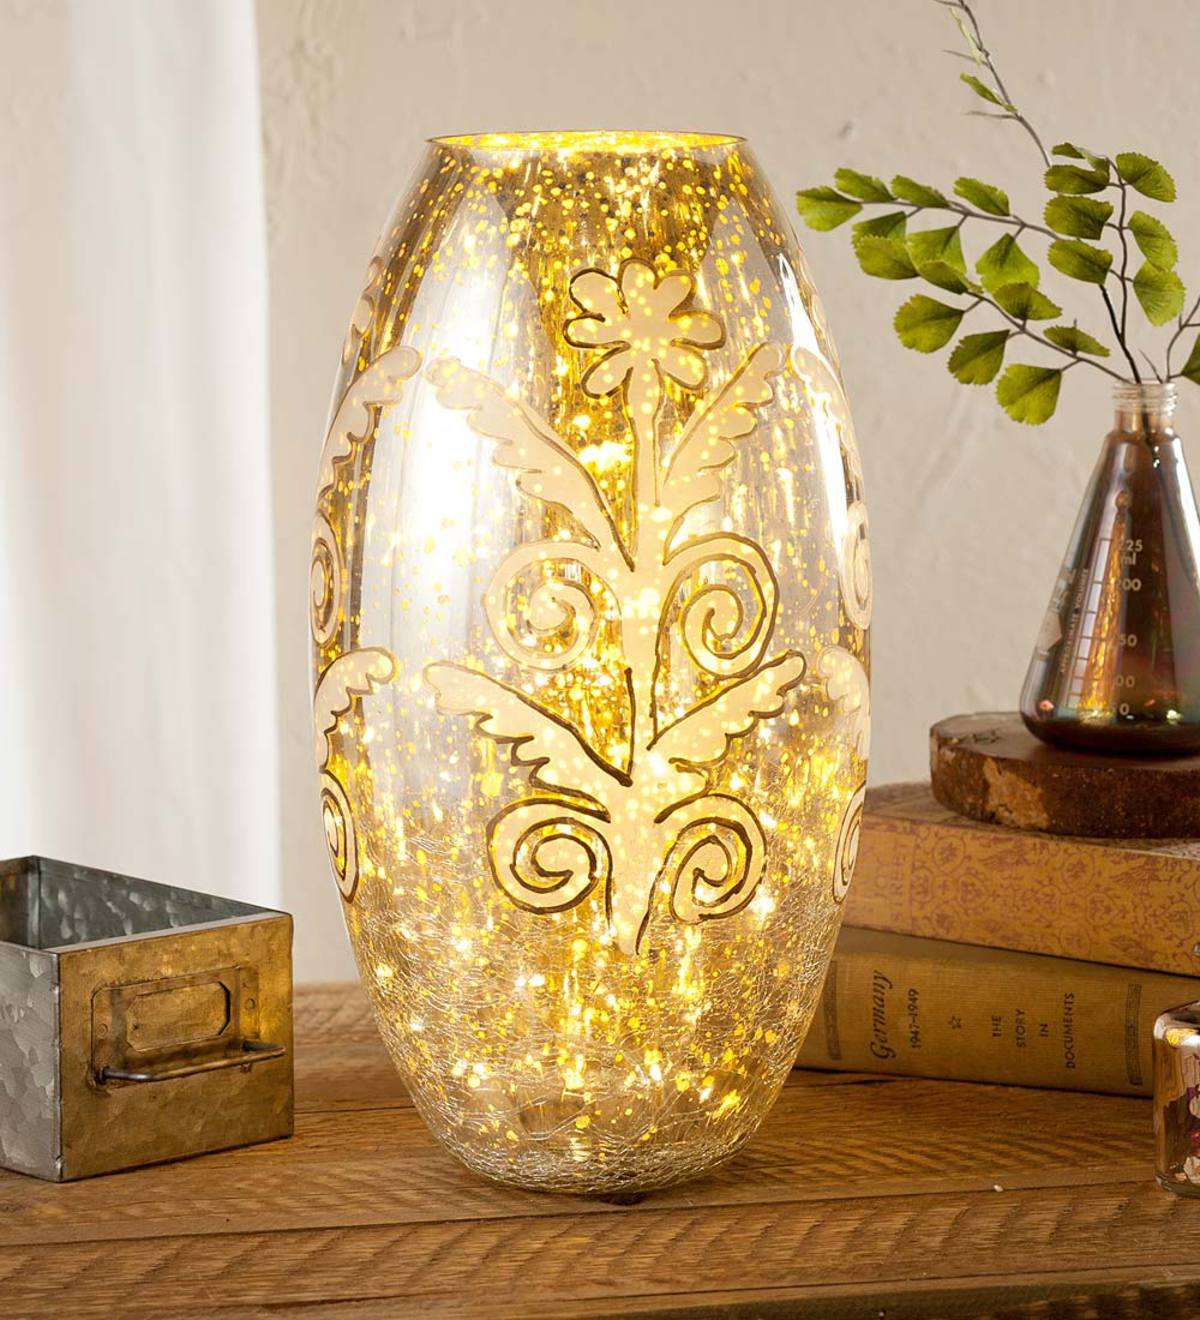 Hand-Painted Mercury Glass Vase | Vases | Home Decor | For the Home ...